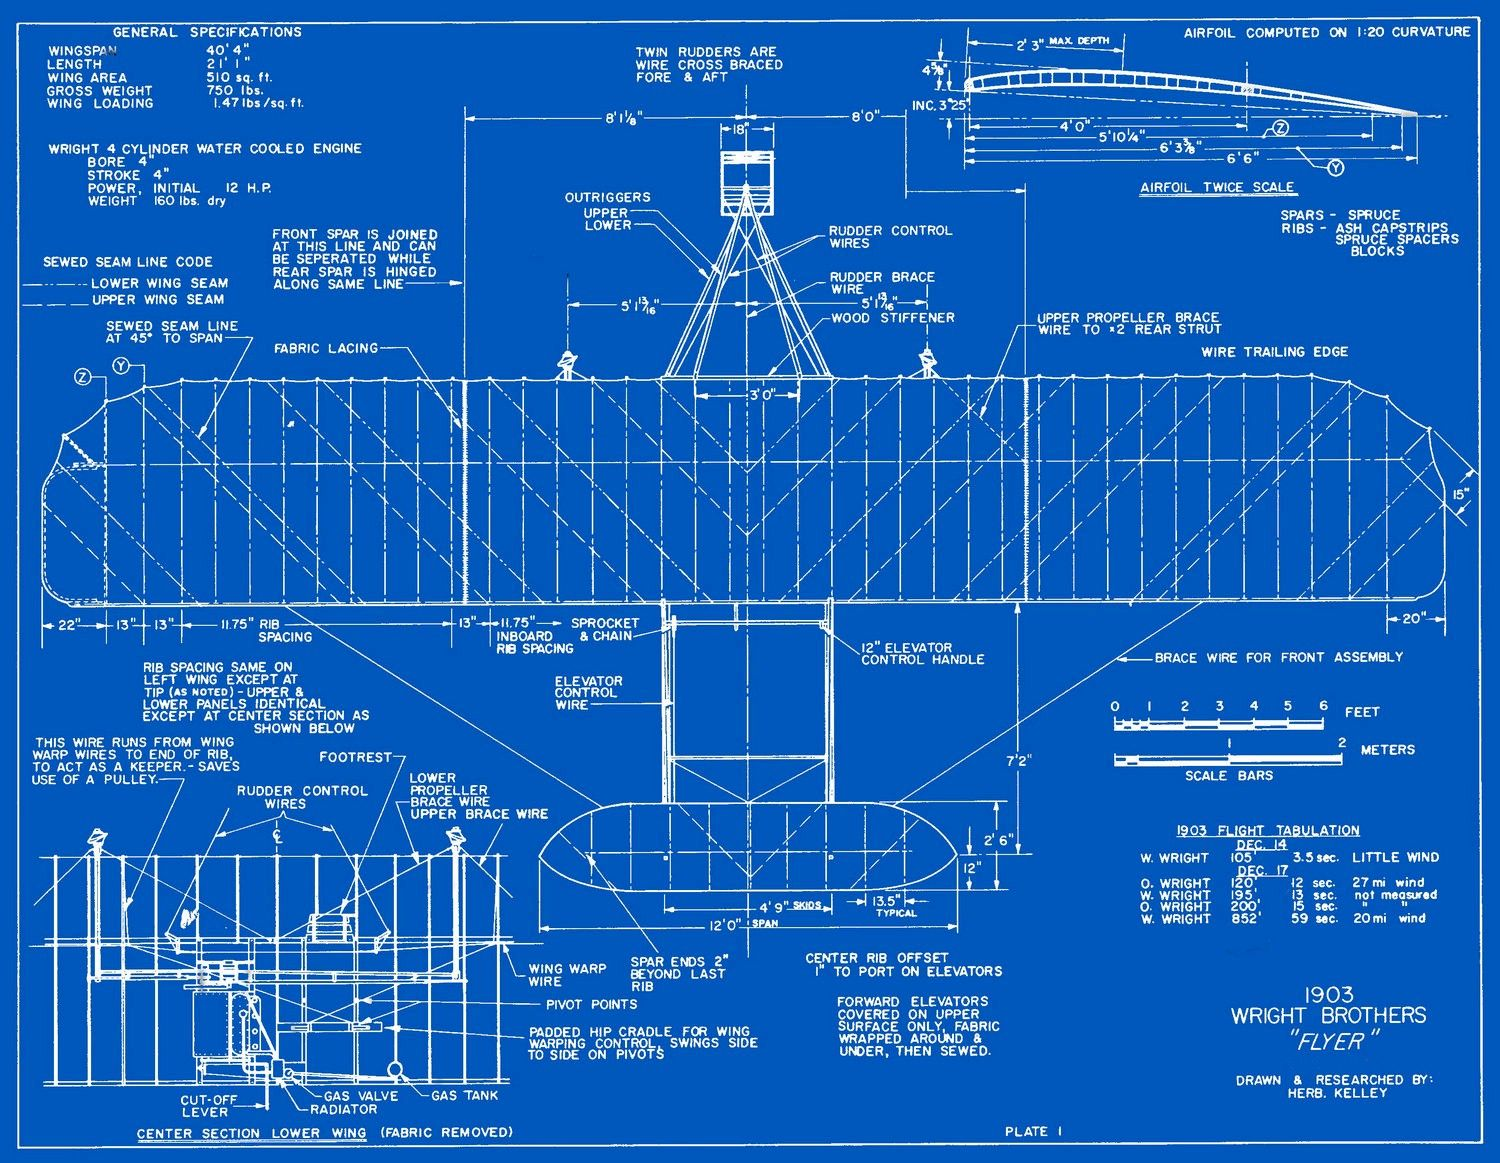 1903 wright flyer blueprints free download planes aircraft 1903 wright flyer blueprints free download malvernweather Images